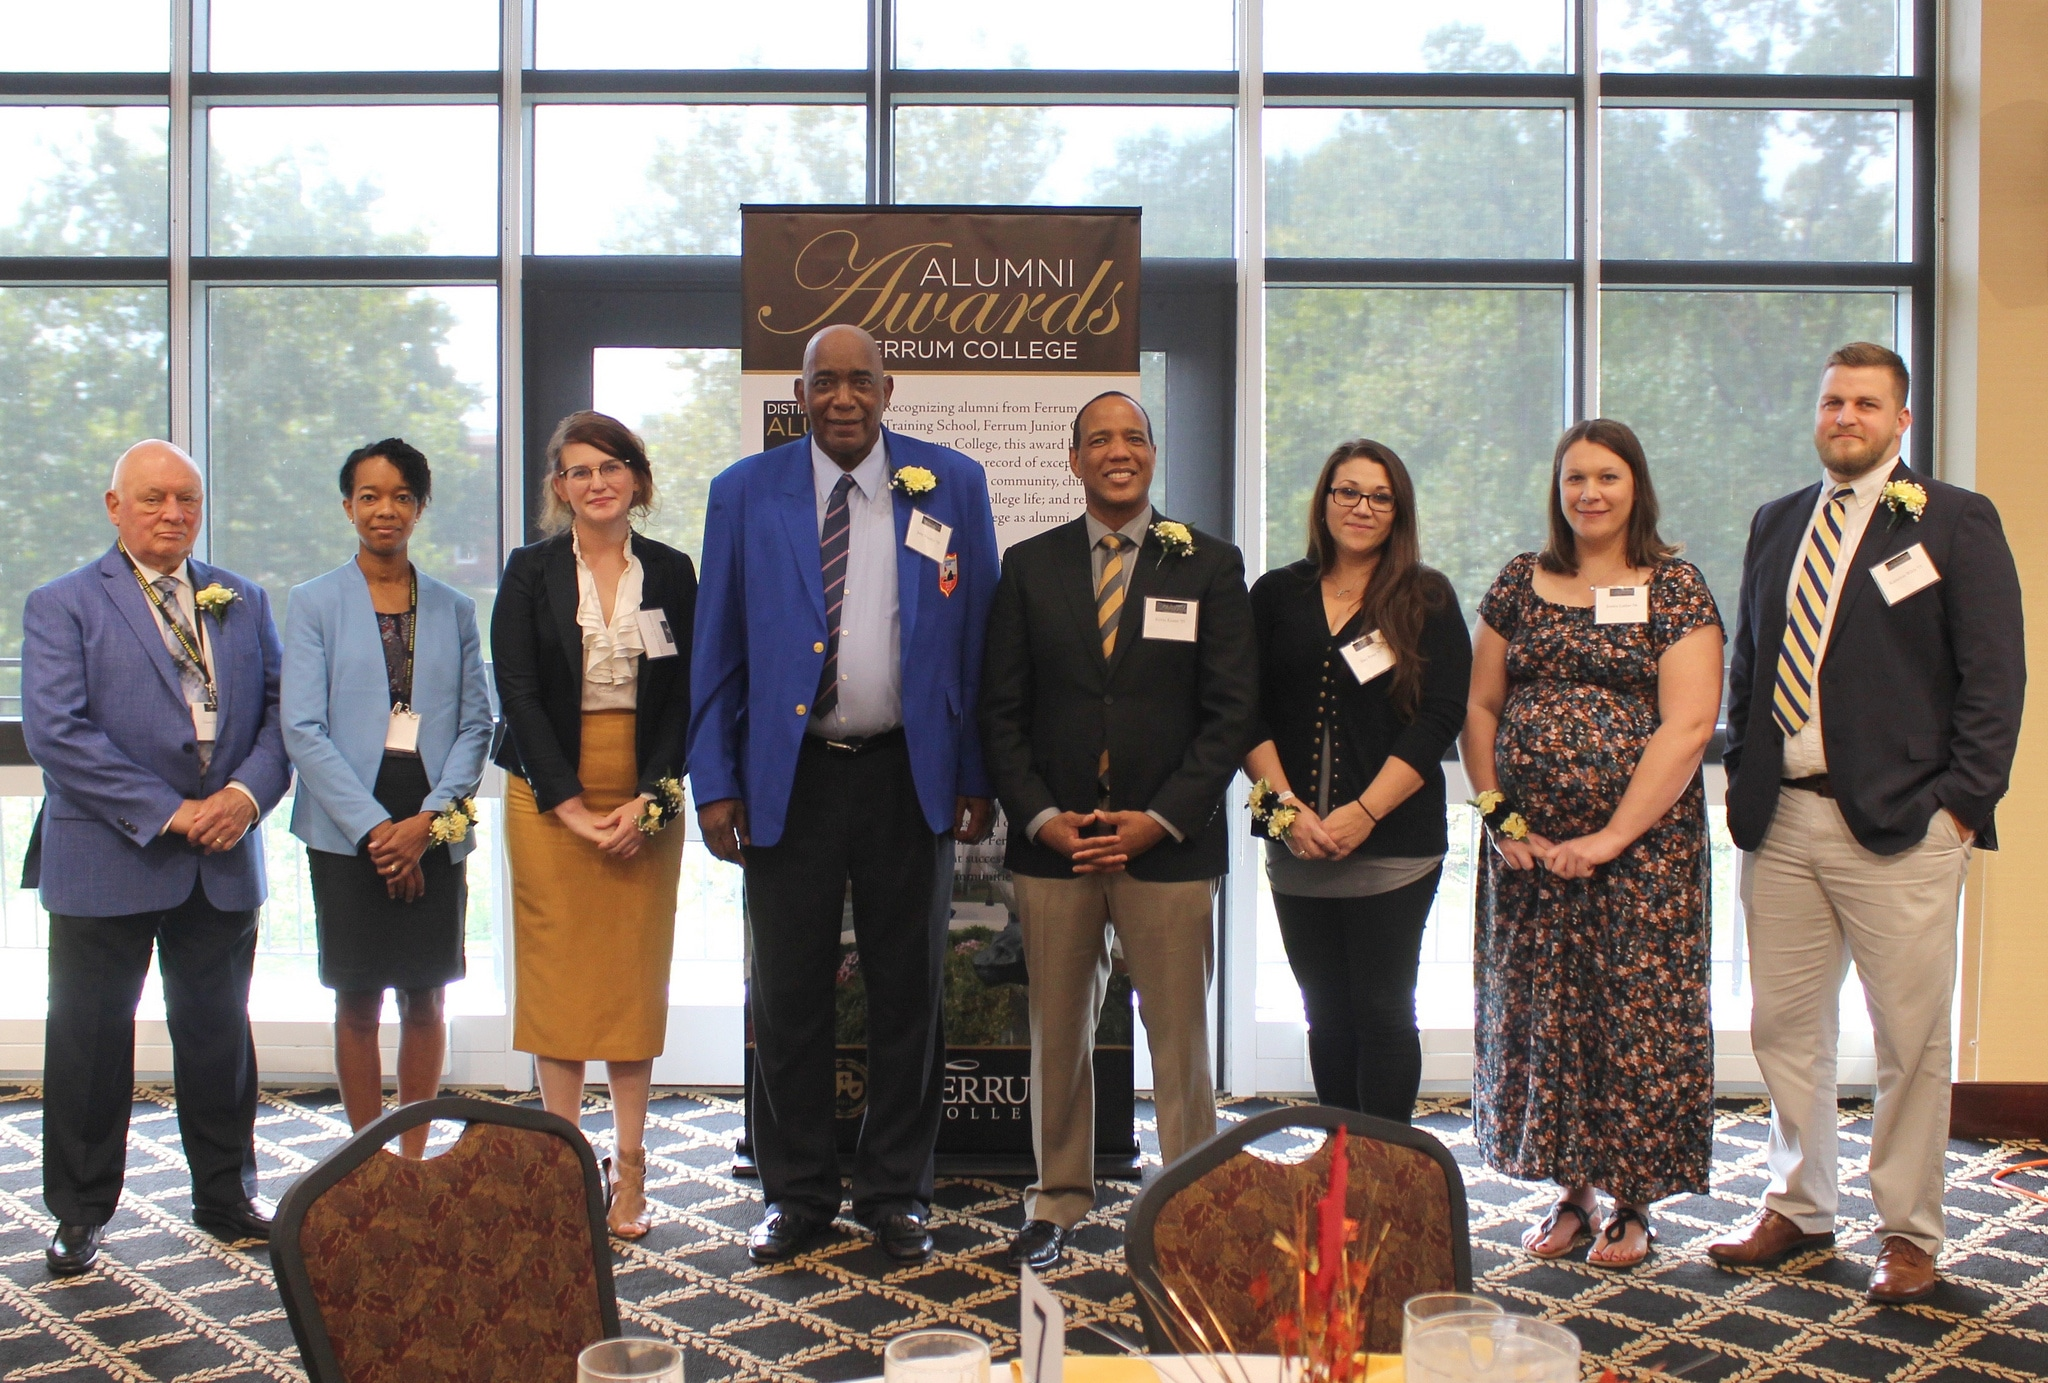 2018 Ferrum College Alumni Awards